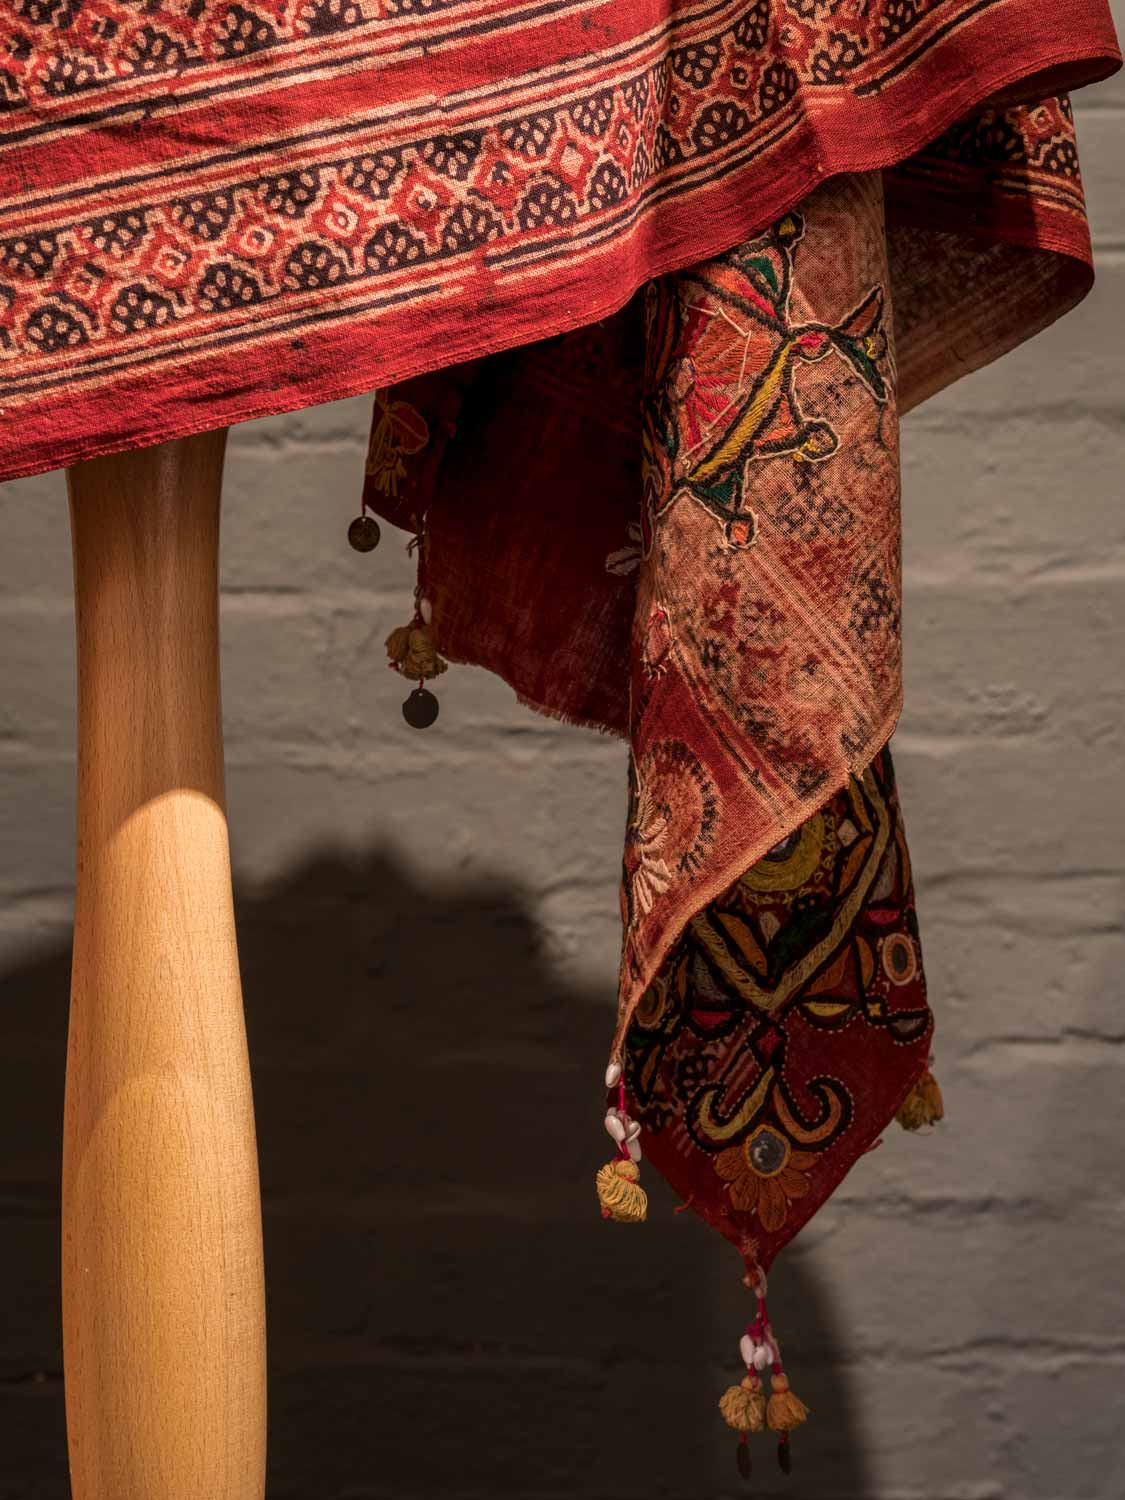 Embroidered Wedding Shawl, Malir, from Rajasthan, detail